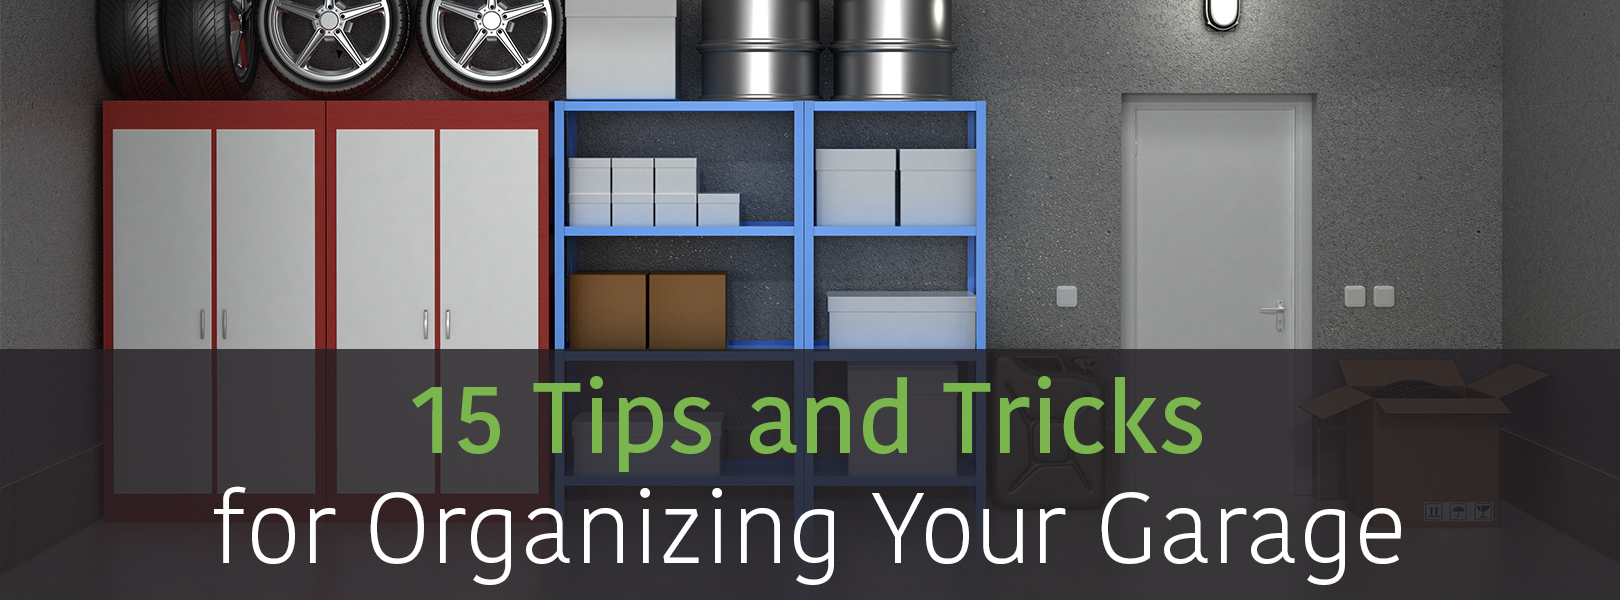 15 Tips And Tricks For Organizing Your Garage Exl Garage